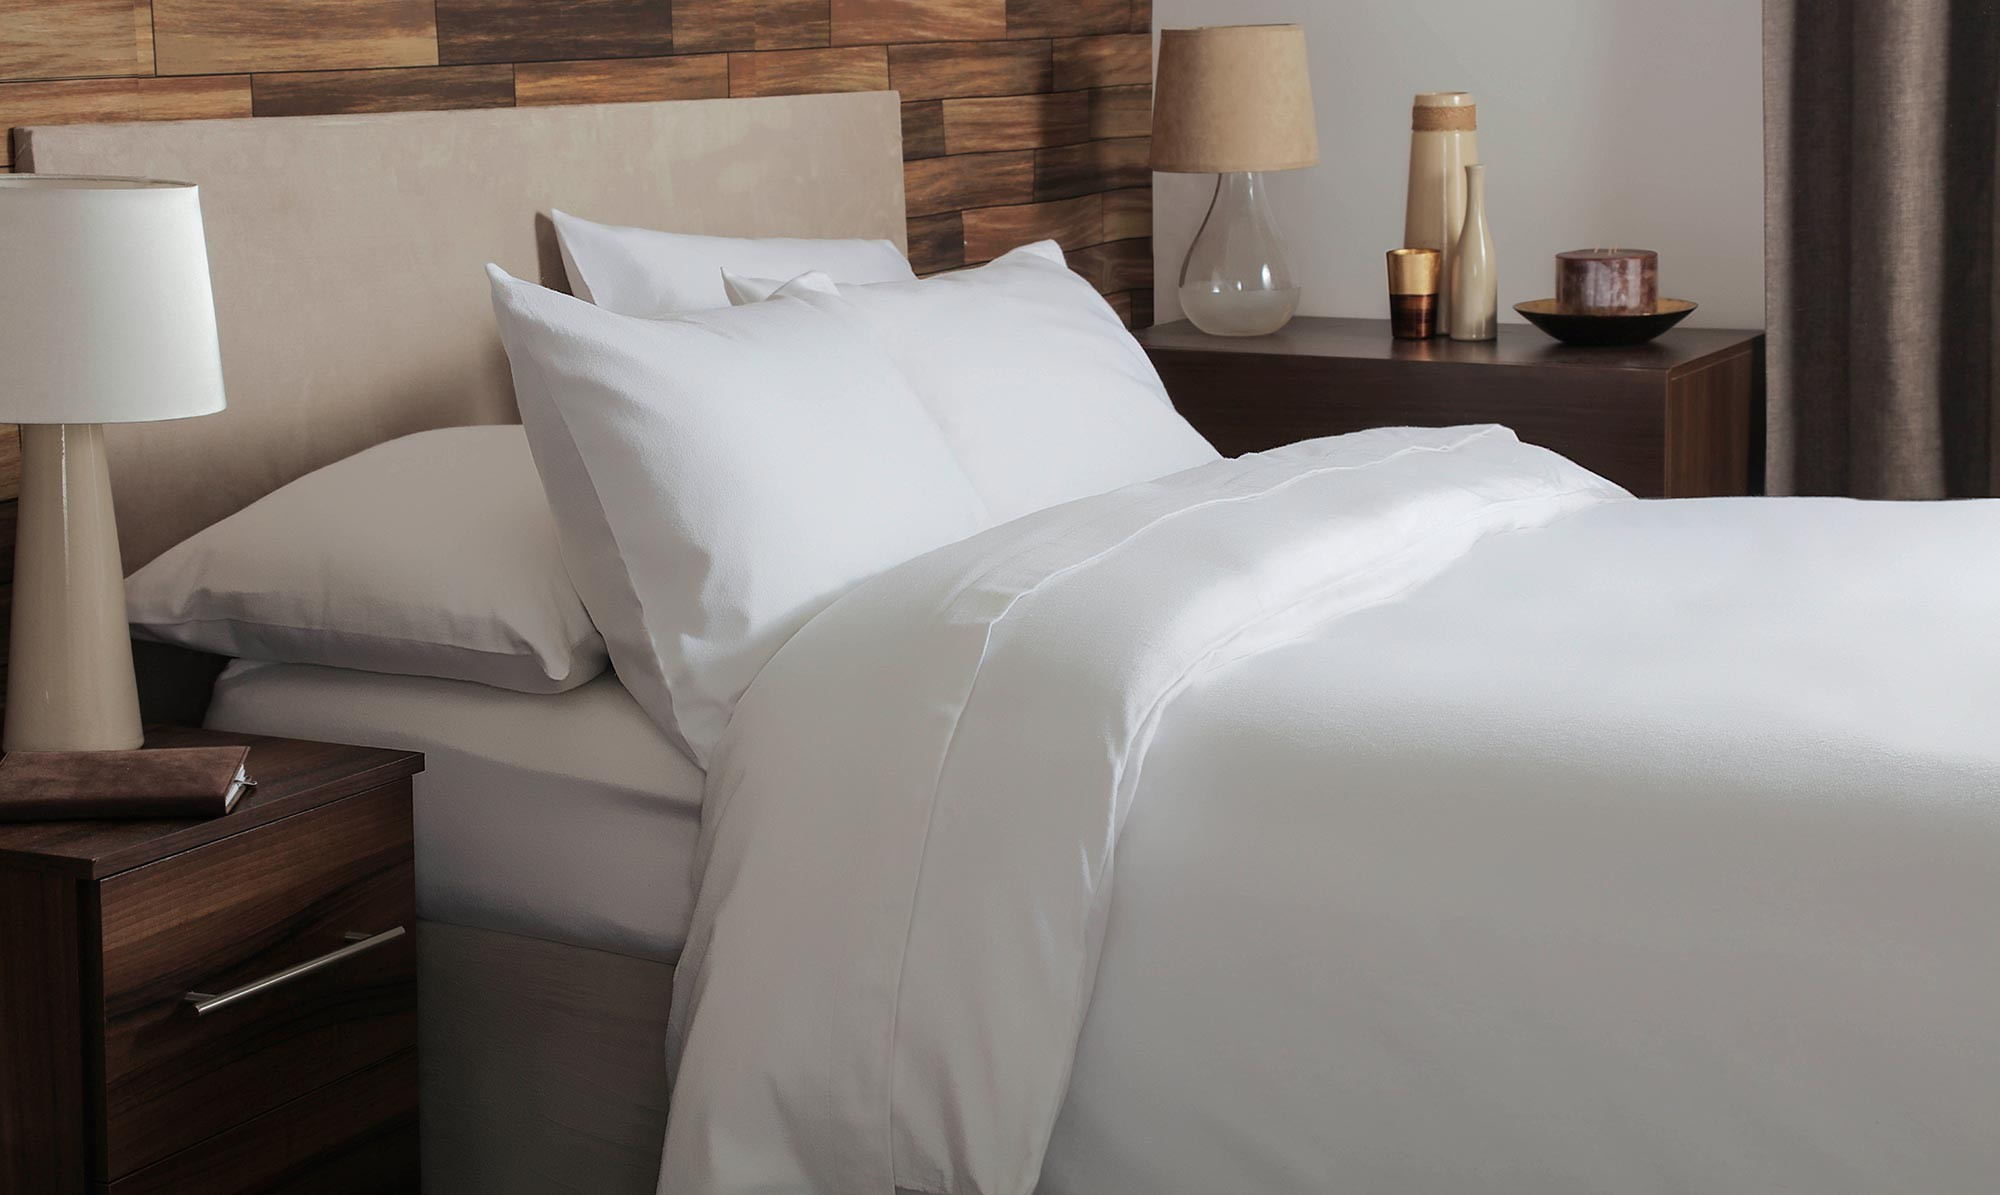 Brushed cotton white sheets